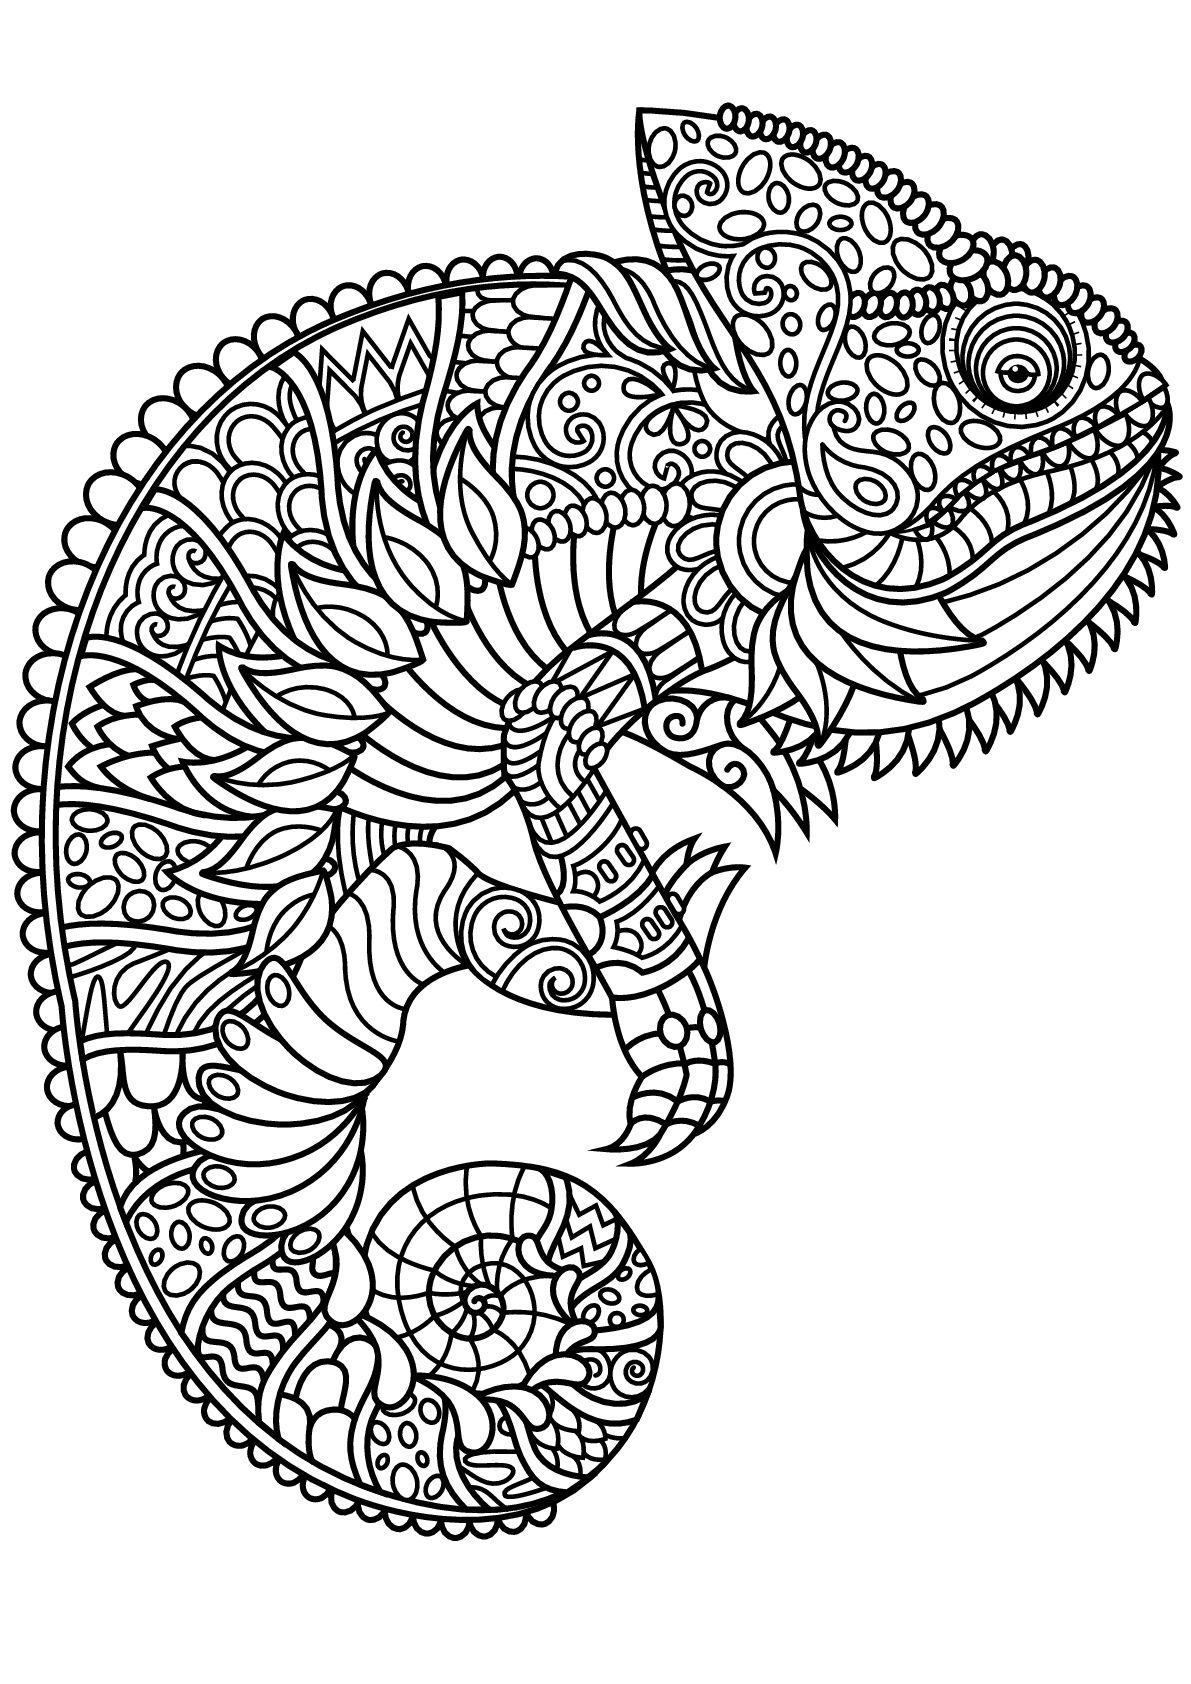 Chameleon With Complex And Beautiful Patterns From The